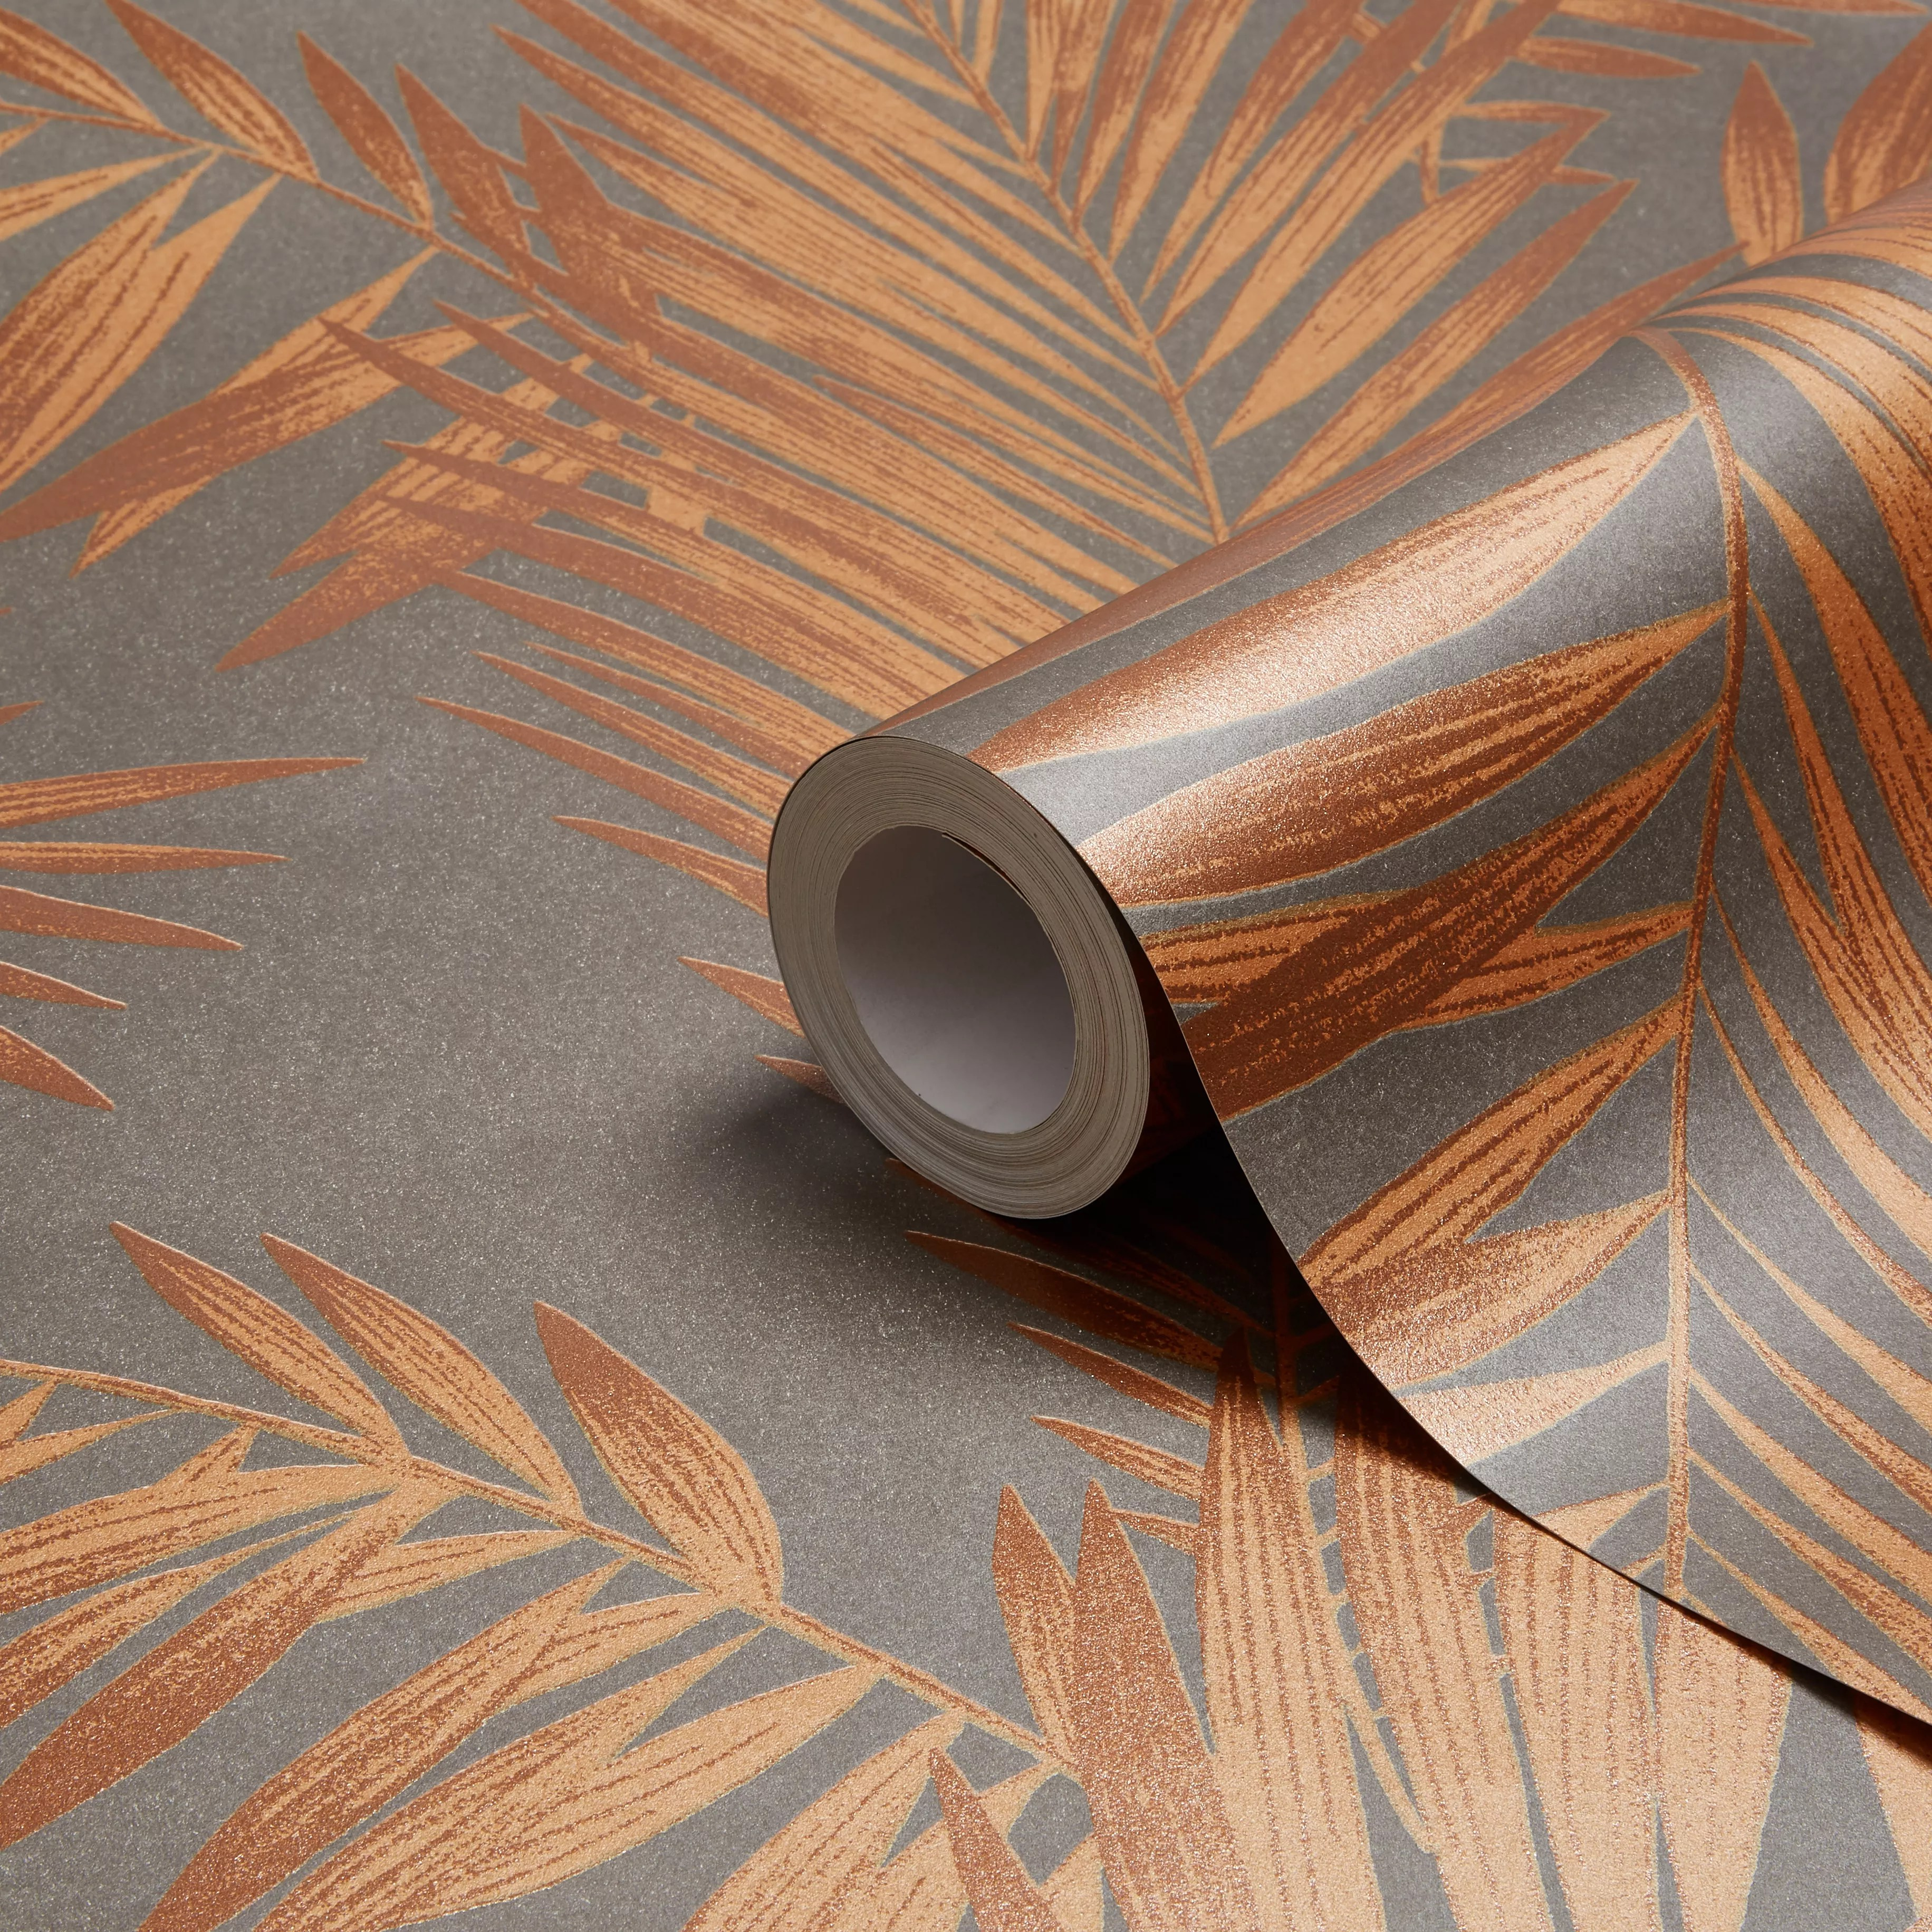 Arthouse Cressida Copper Amp Grey Leaves Glitter Effect Wallpaper Clearance DIY At BampQ